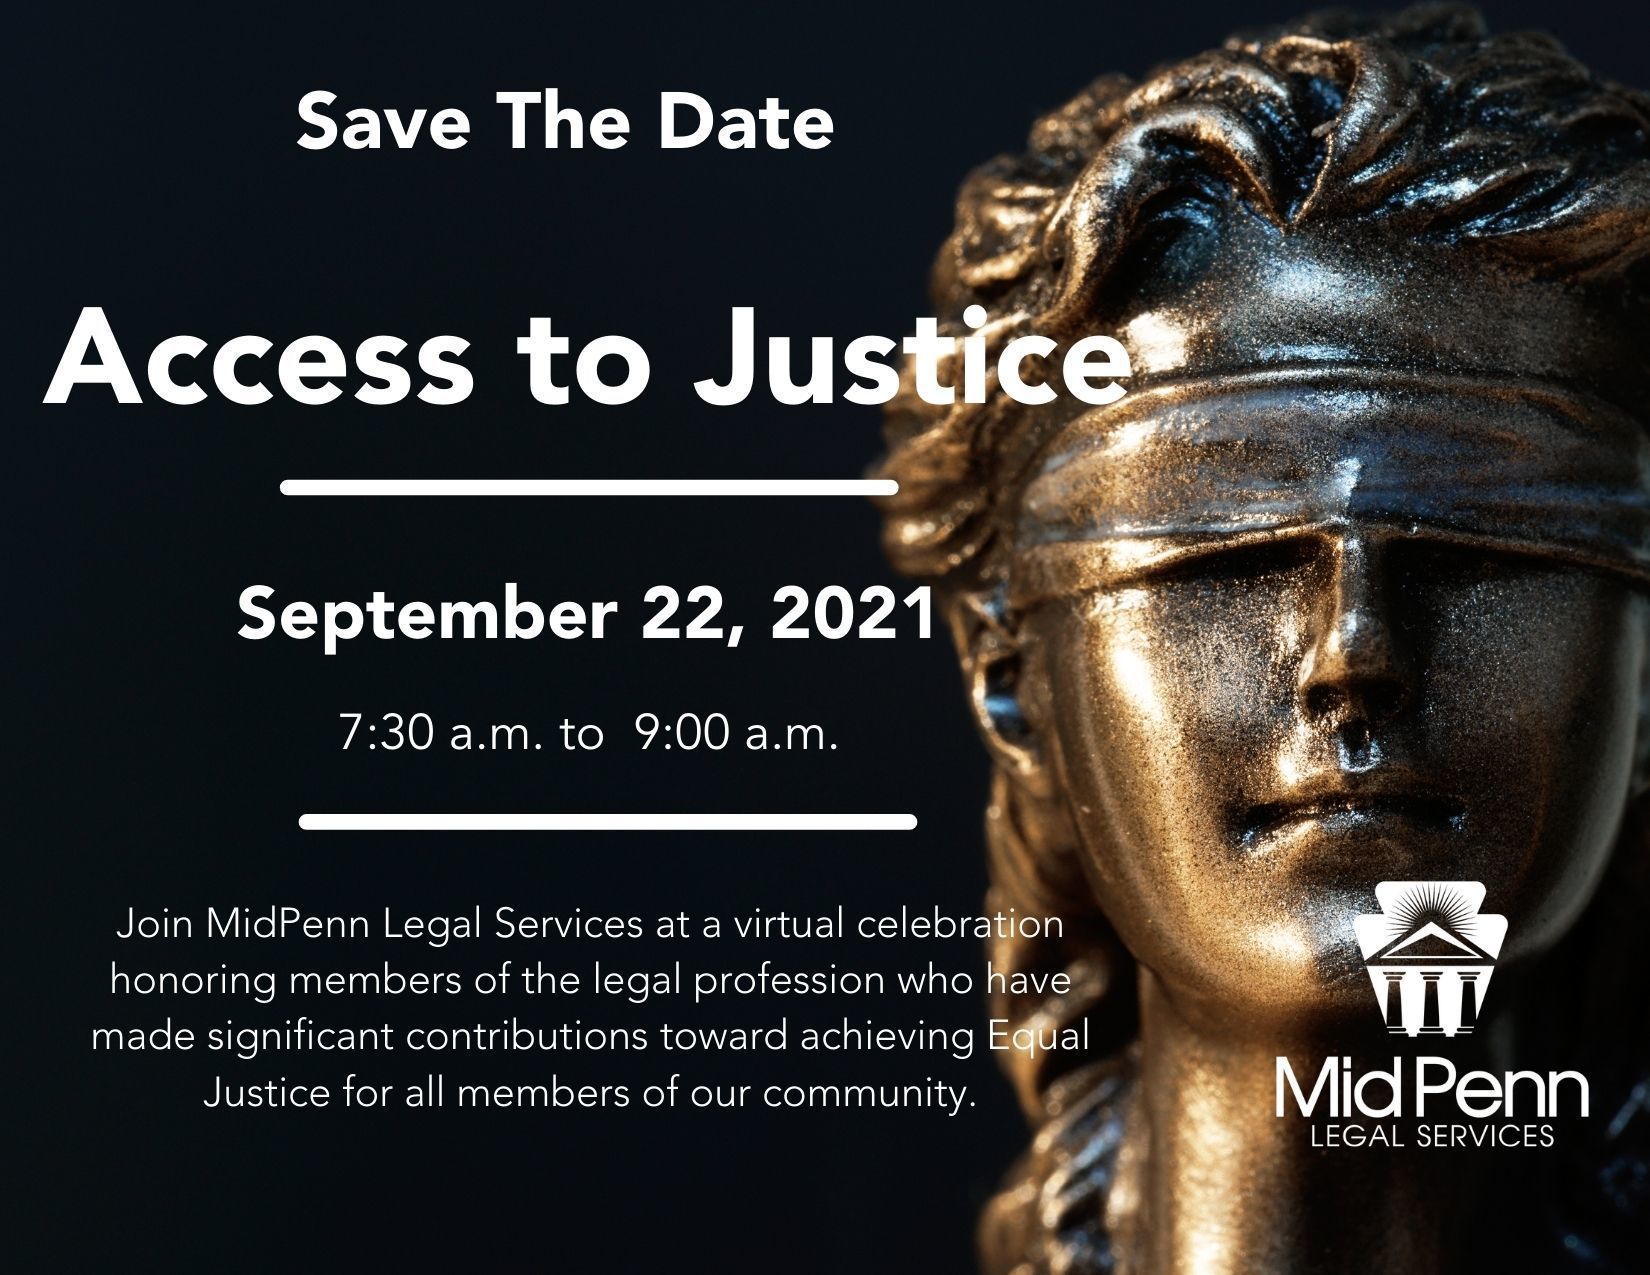 Access to Justice a virtual celebration of volunteer attorneys. September 22 at 7:30 a.m.